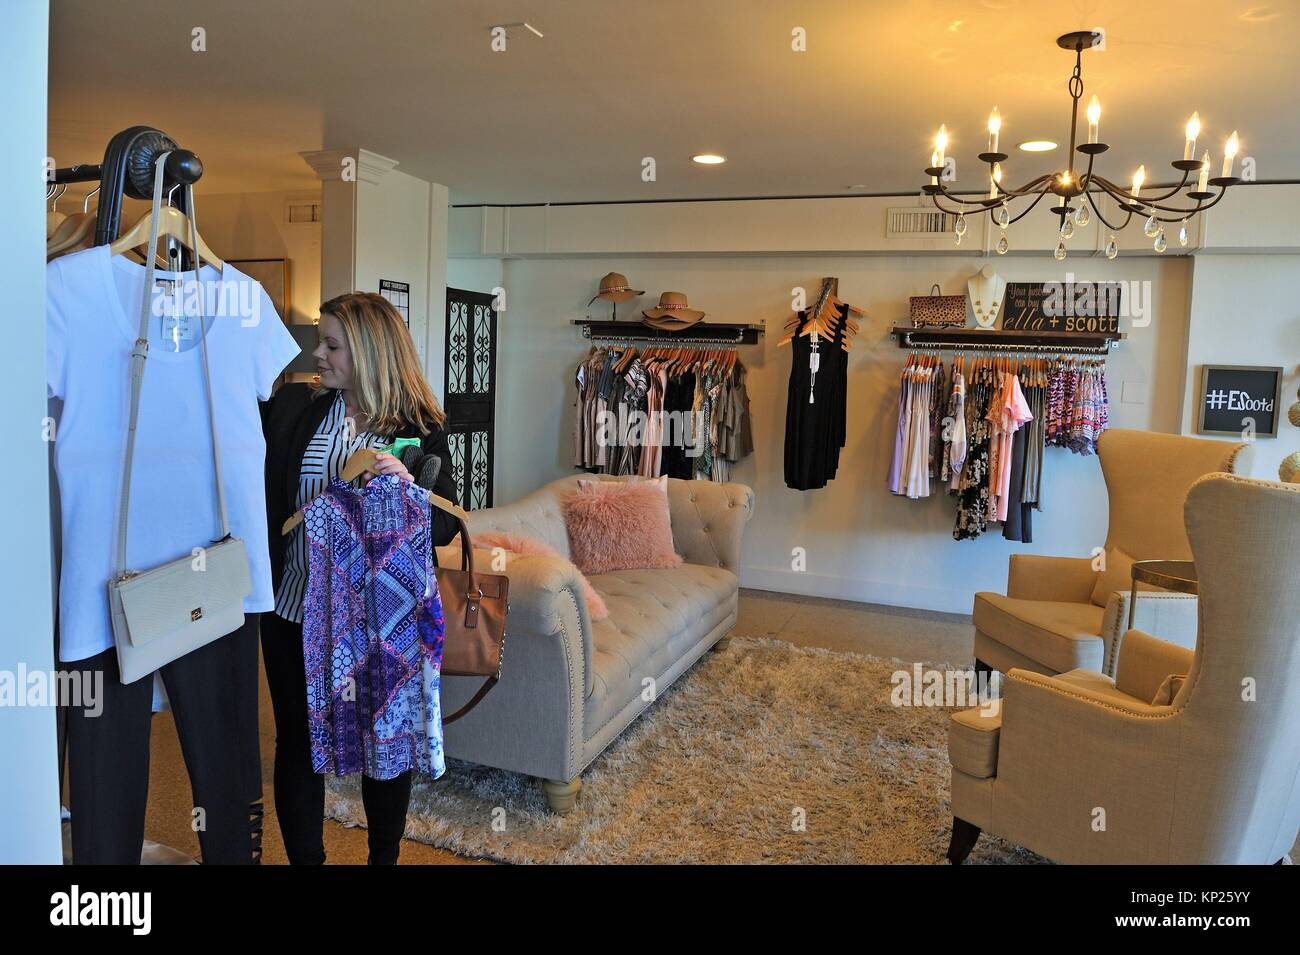 Ella+Scott fashion shop in the Milfred Building, Beaumont, Texas, United States of America, North America Stock Photo